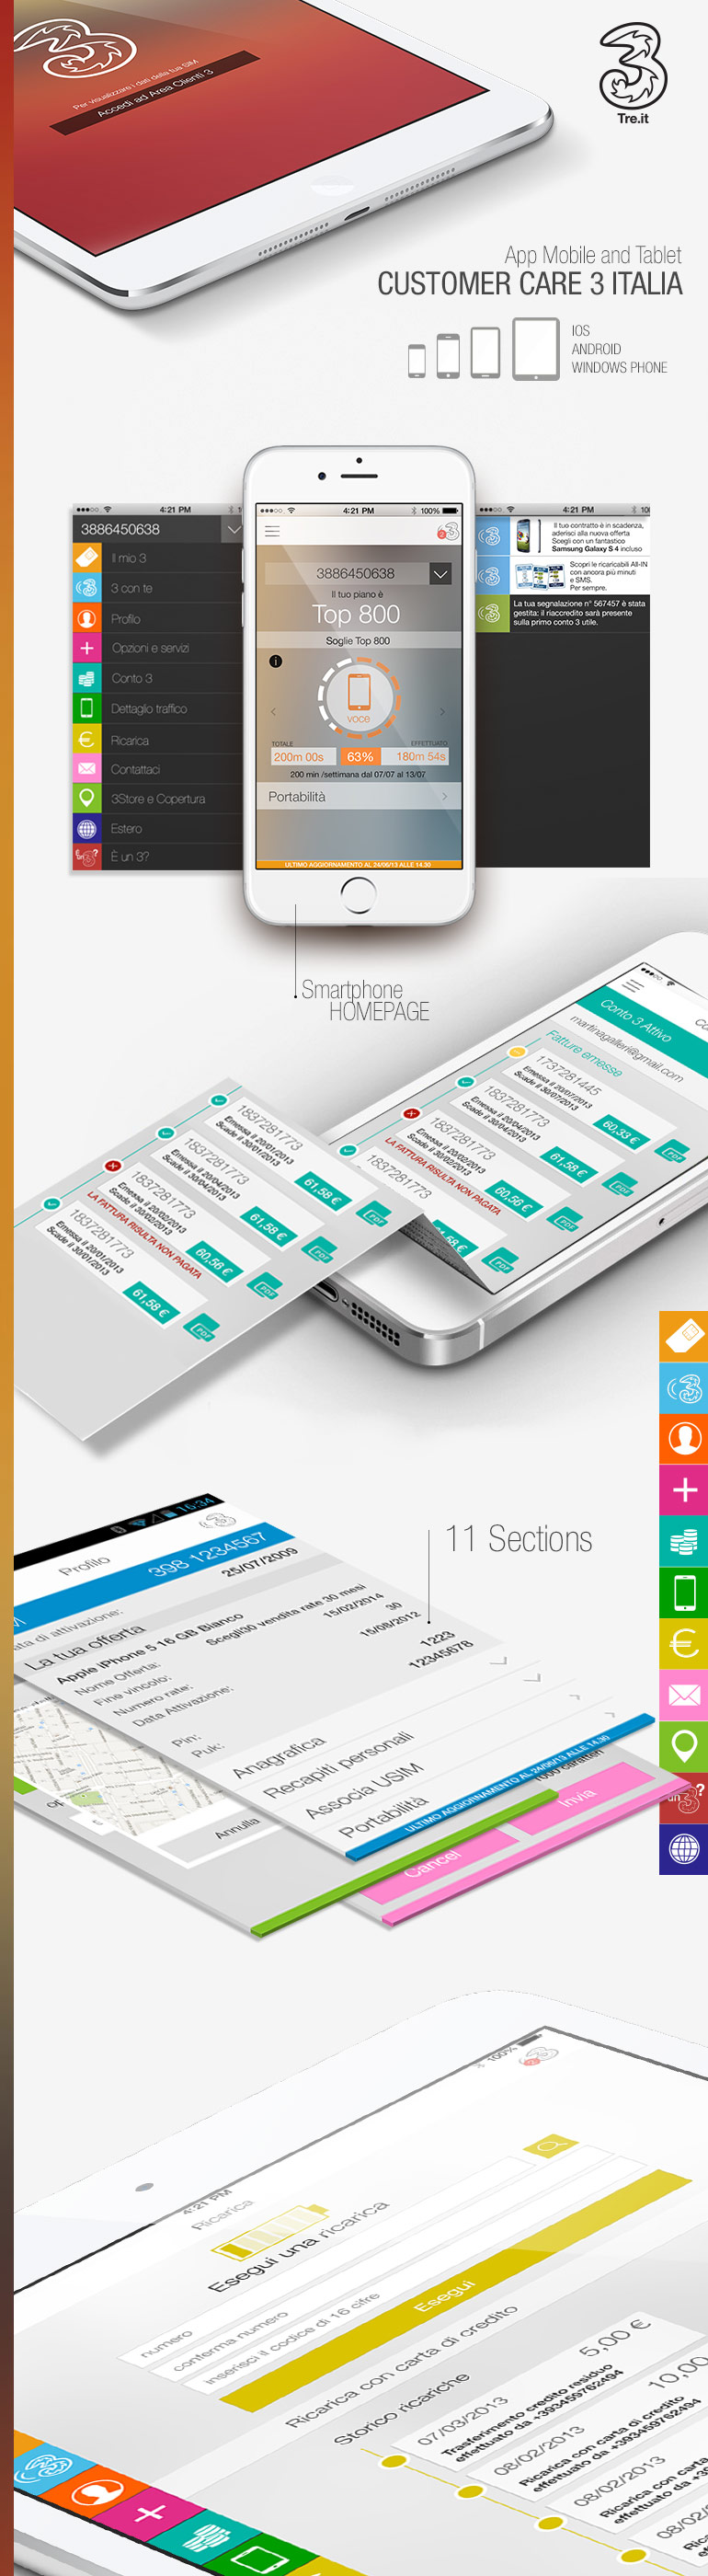 Mobile and tablet app 3 italia